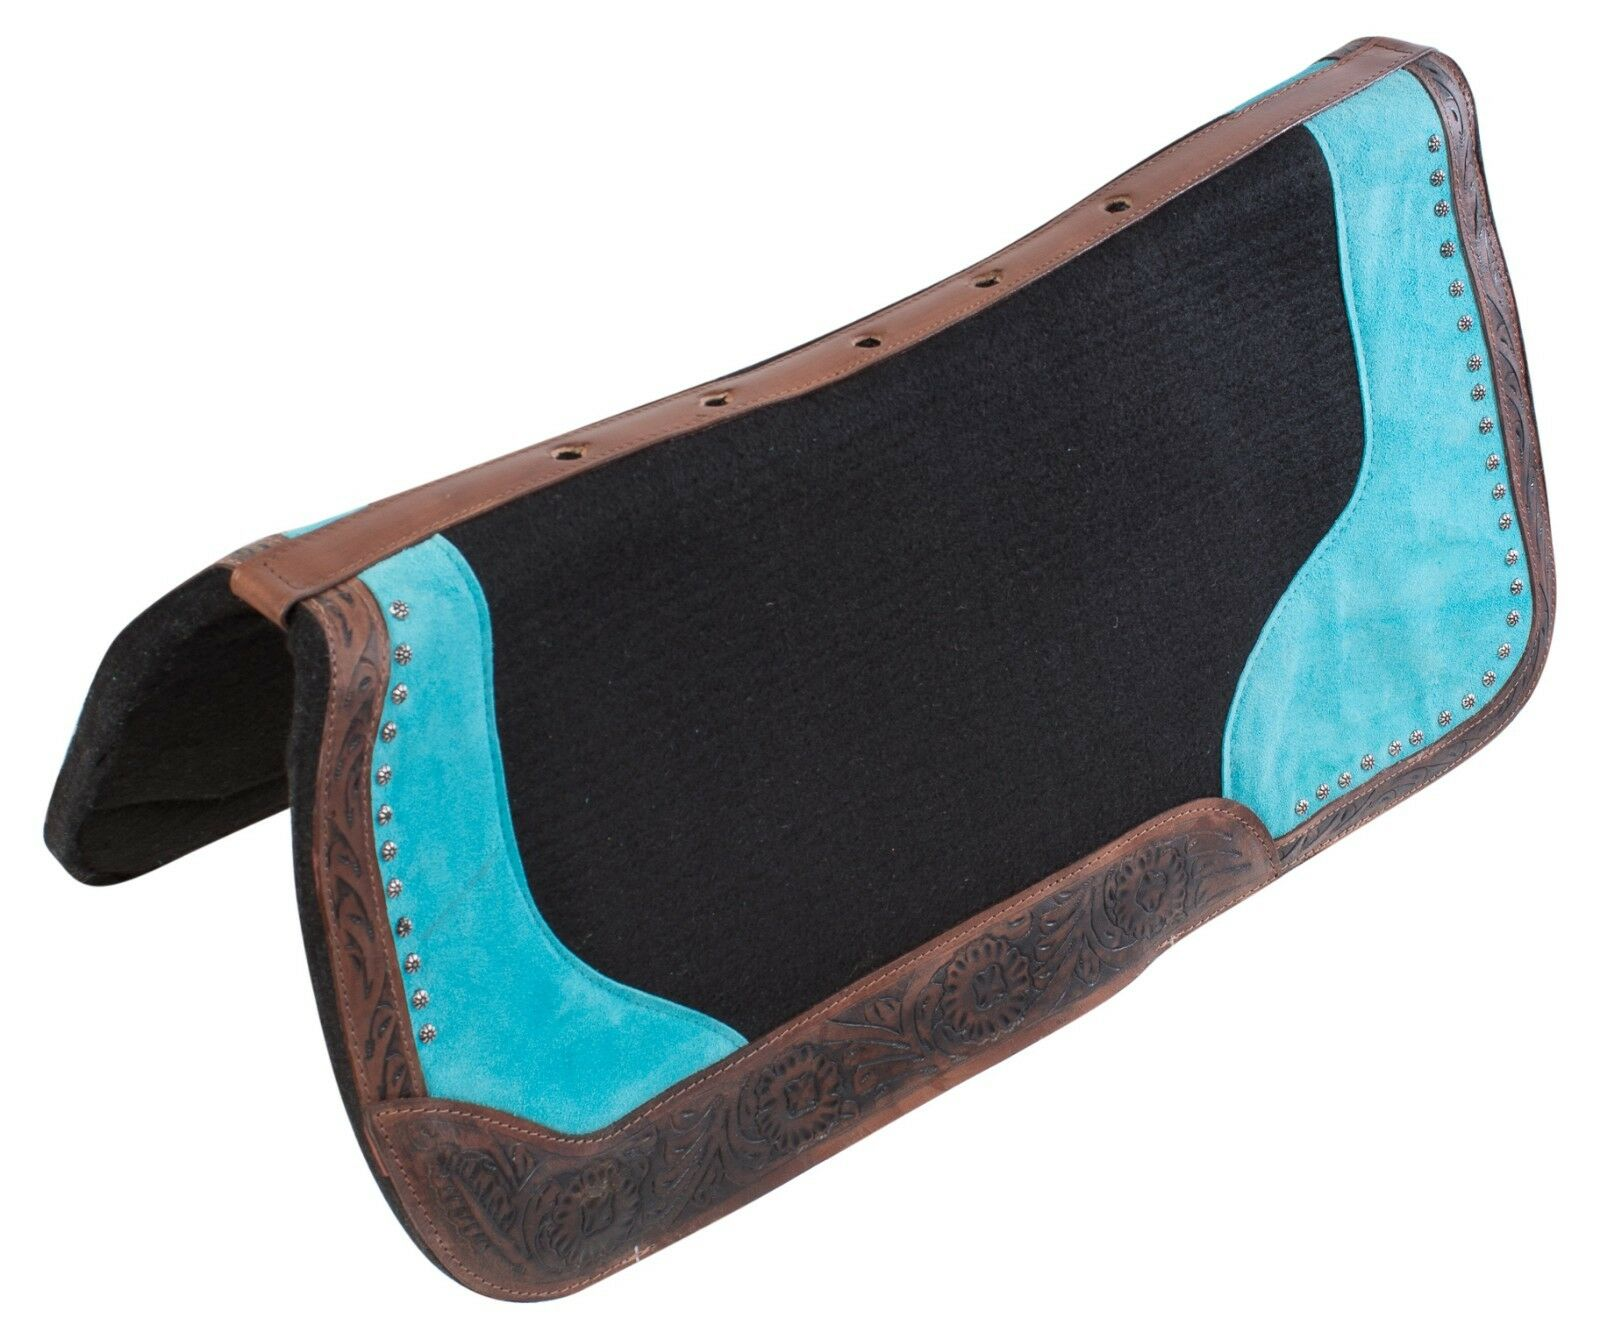 NEW TURQUOISE BARREL RACER WESTERN PLEASURE NON SLIP HORSE SADDLE PAD BLANKET